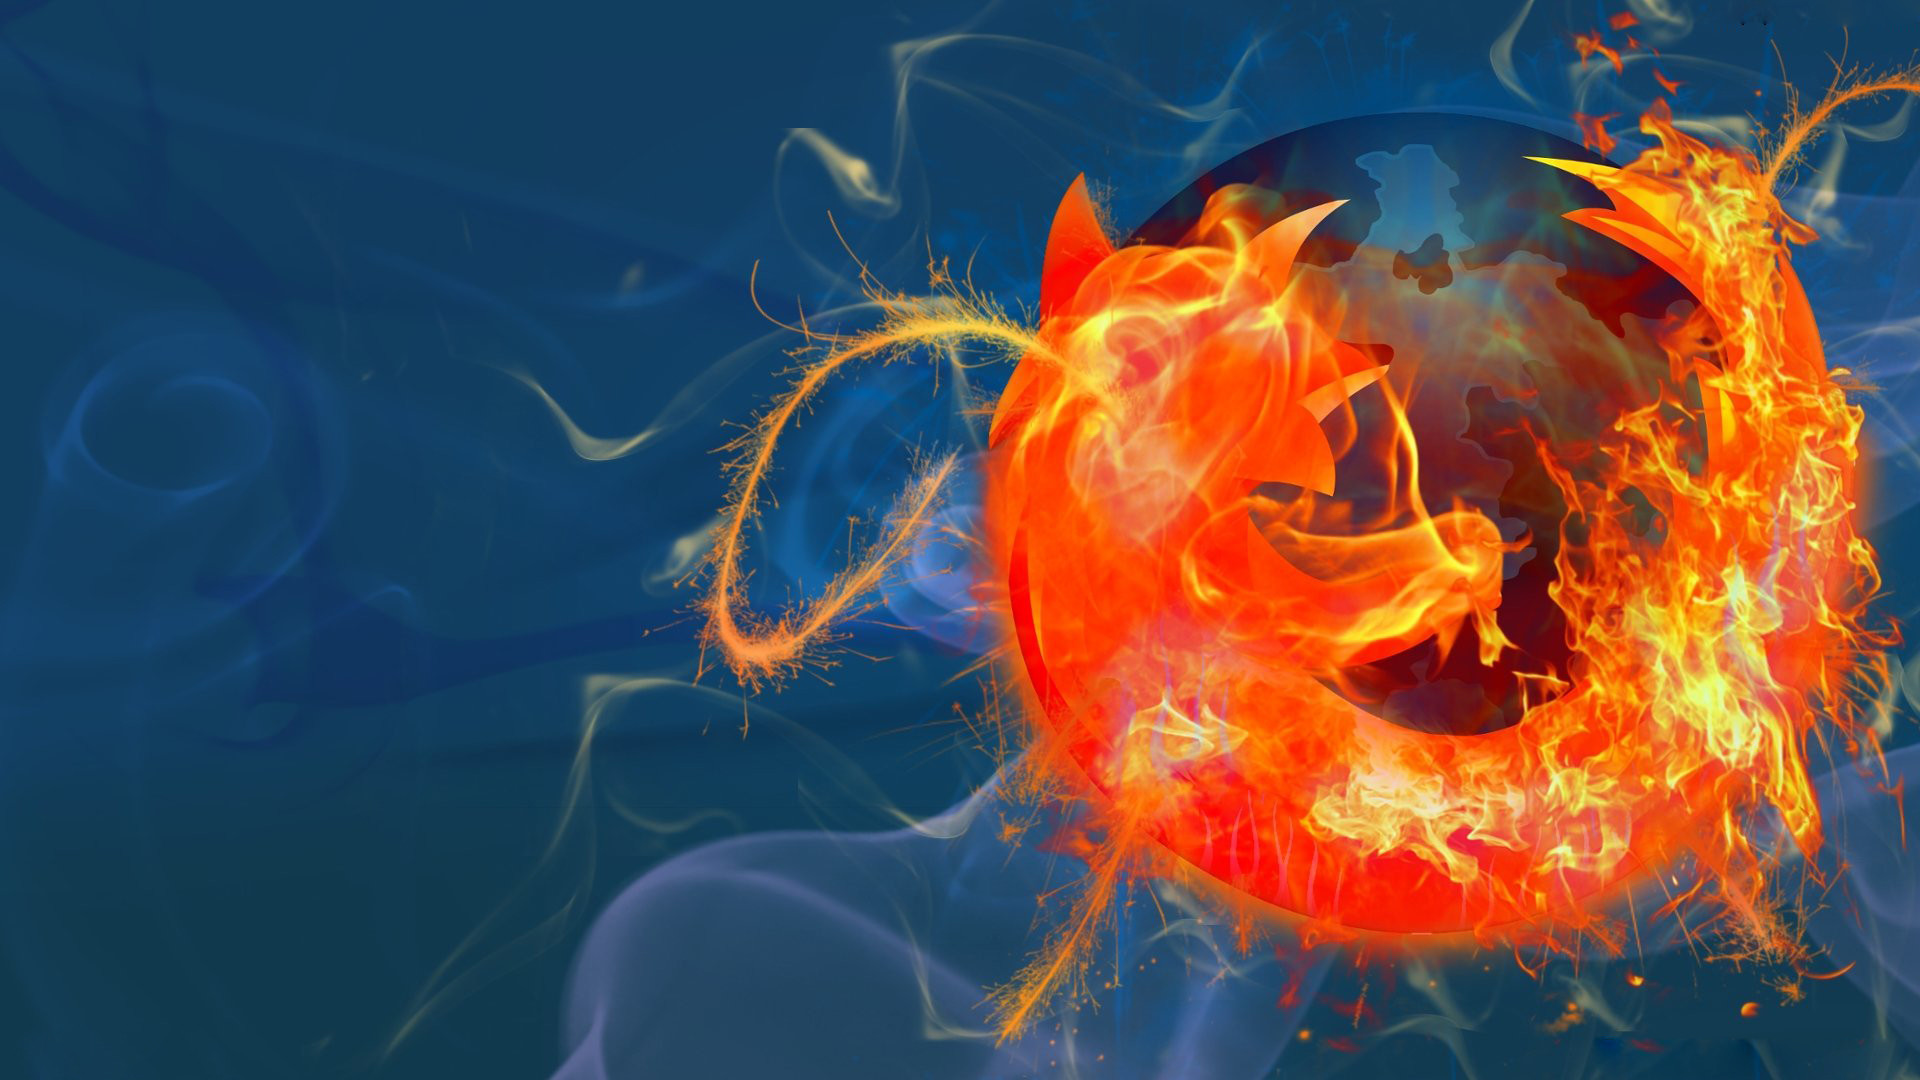 Mozilla firefox background 55 images - How to change firefox background image ...